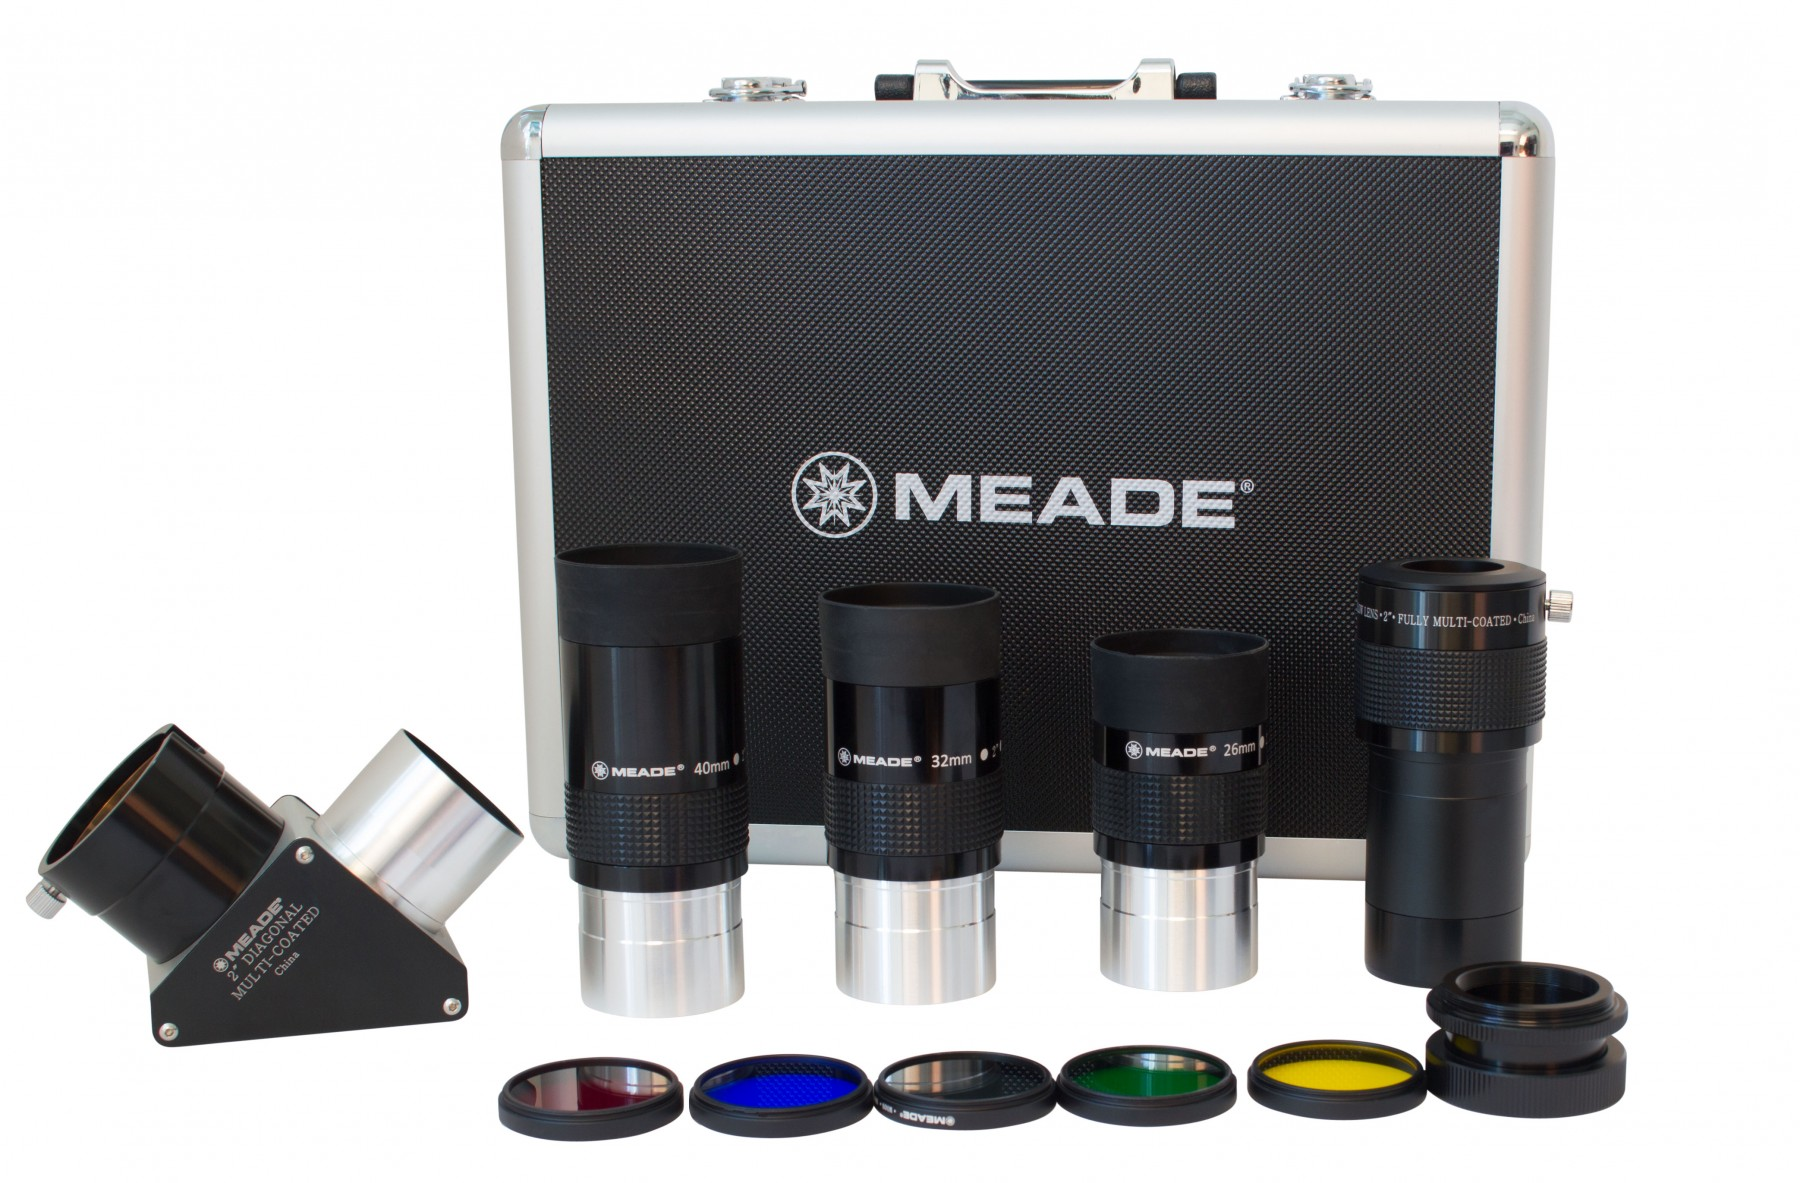 Meade Instruments Series 4000 2-Inch Eyepiece and Filter Set by Meade Instruments